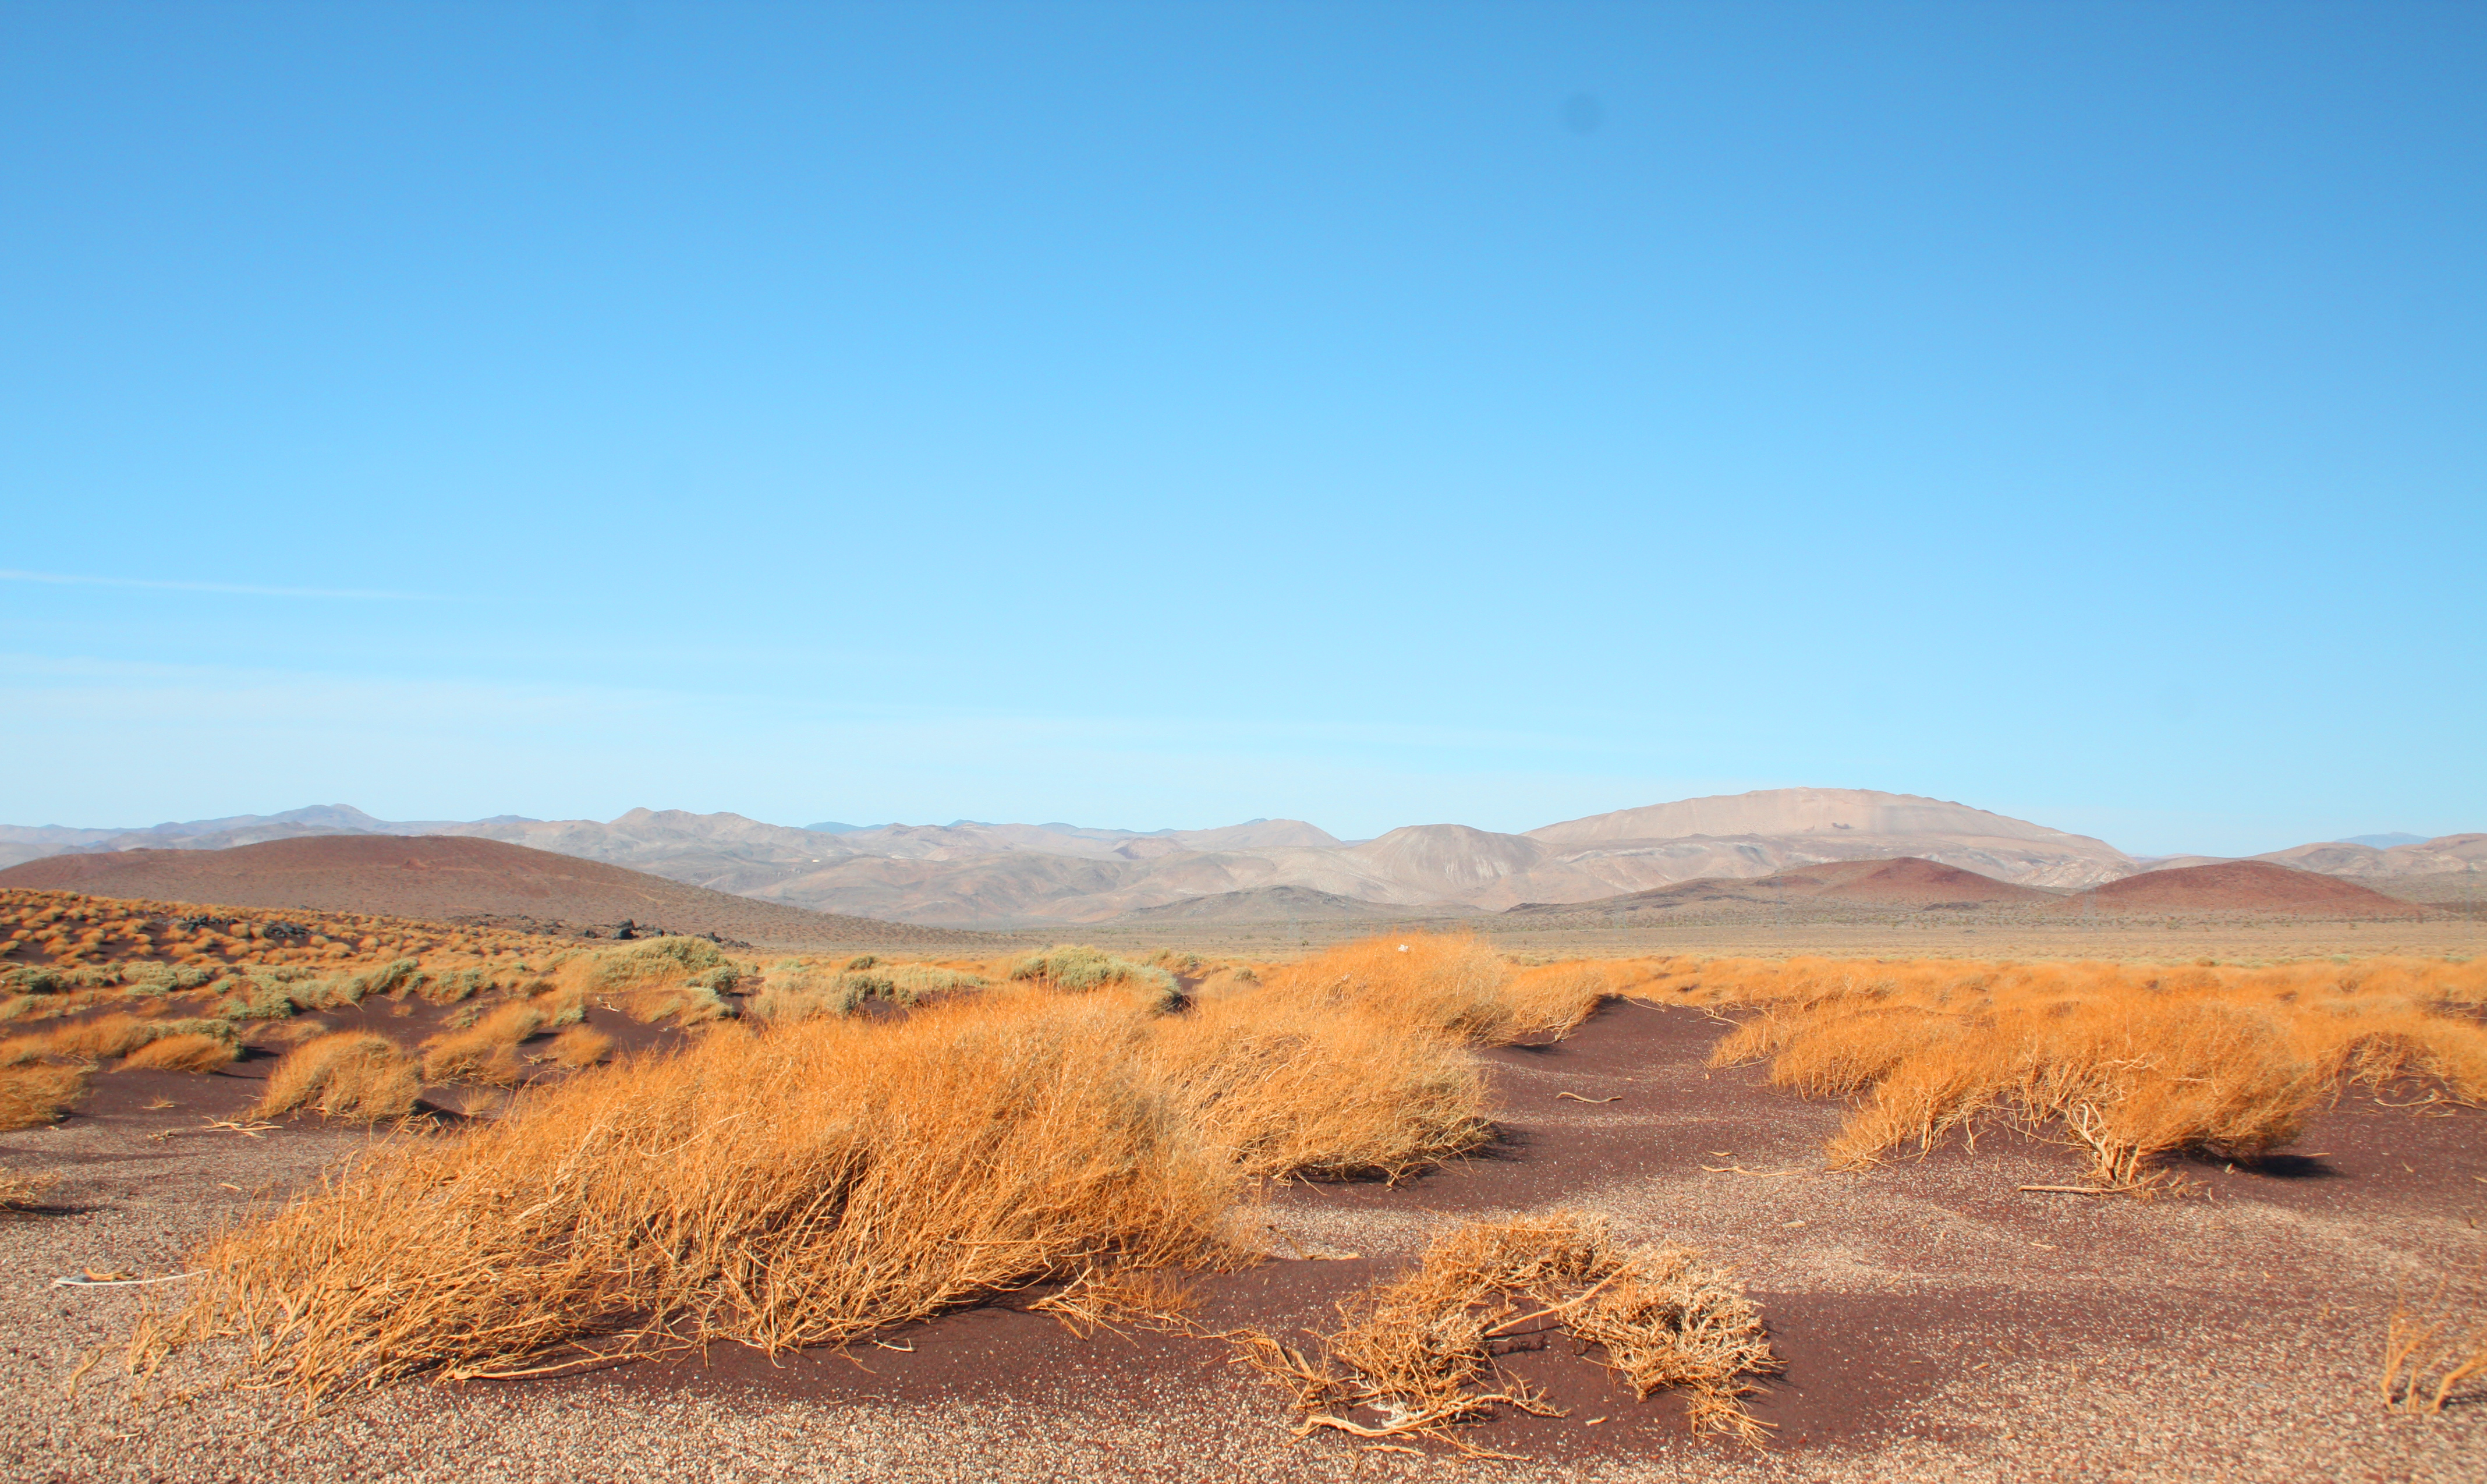 Desert landscape by muttiniraq on deviantart for Desert landscape